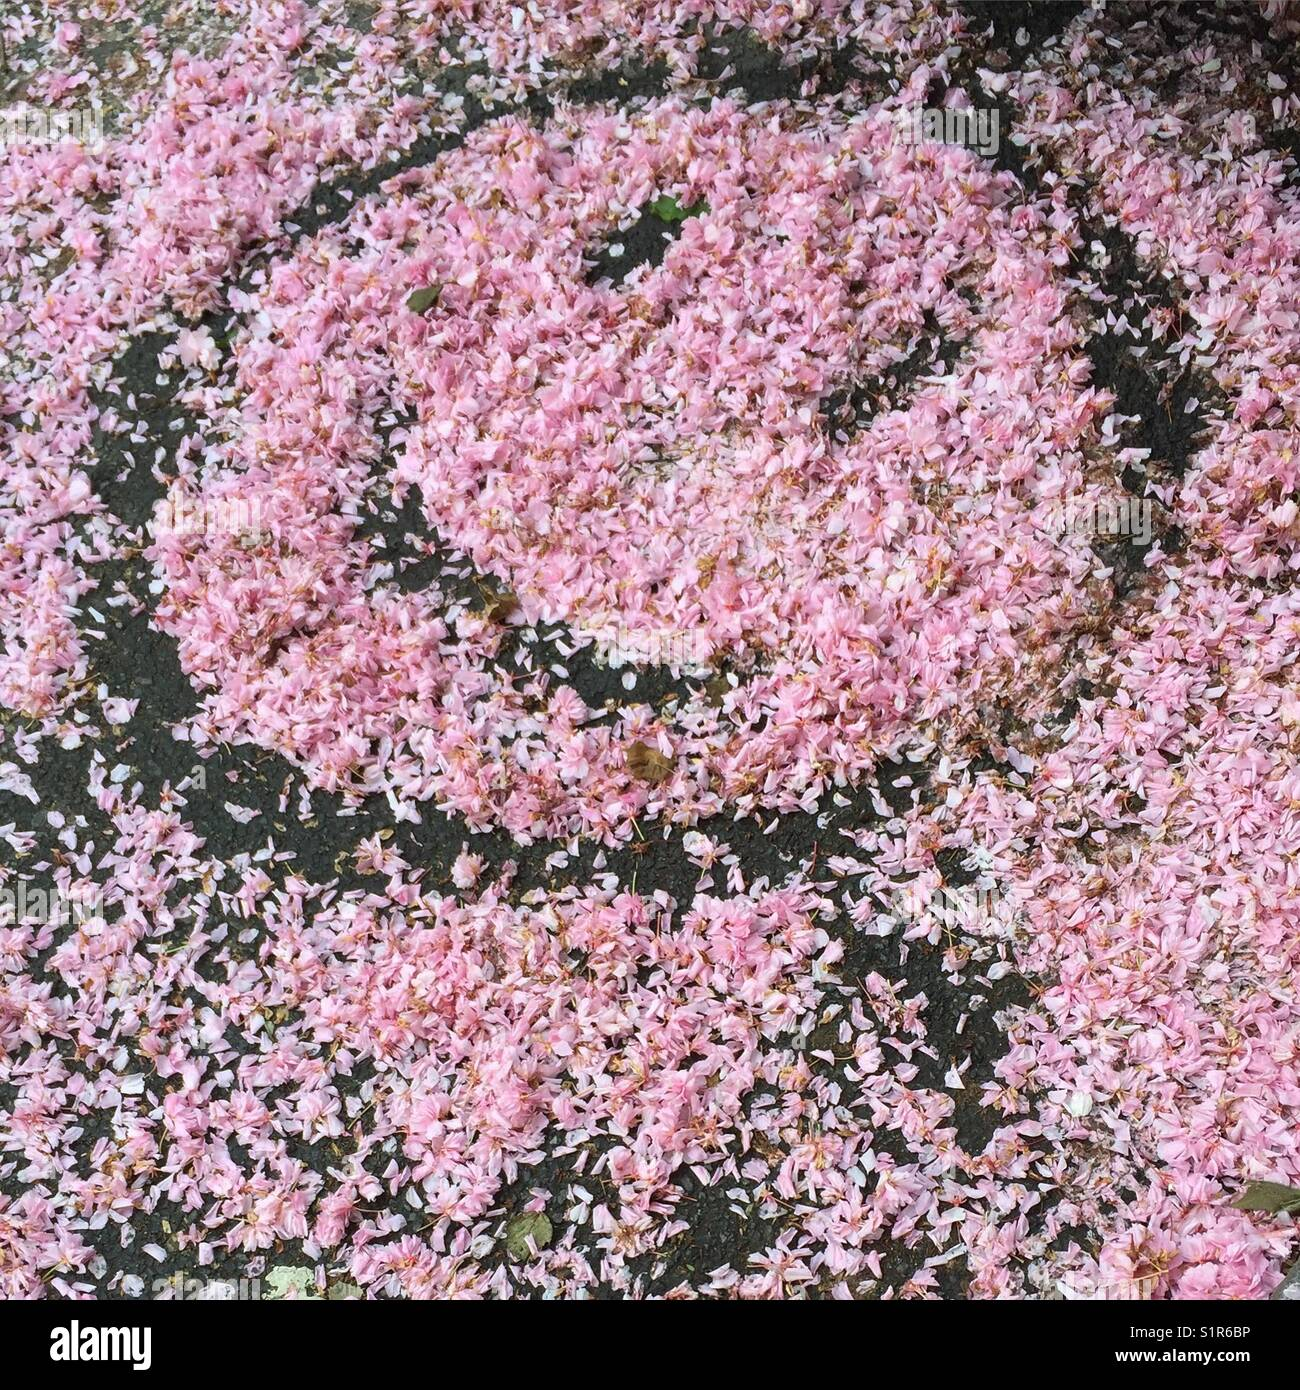 Smiley face petals - Stock Image